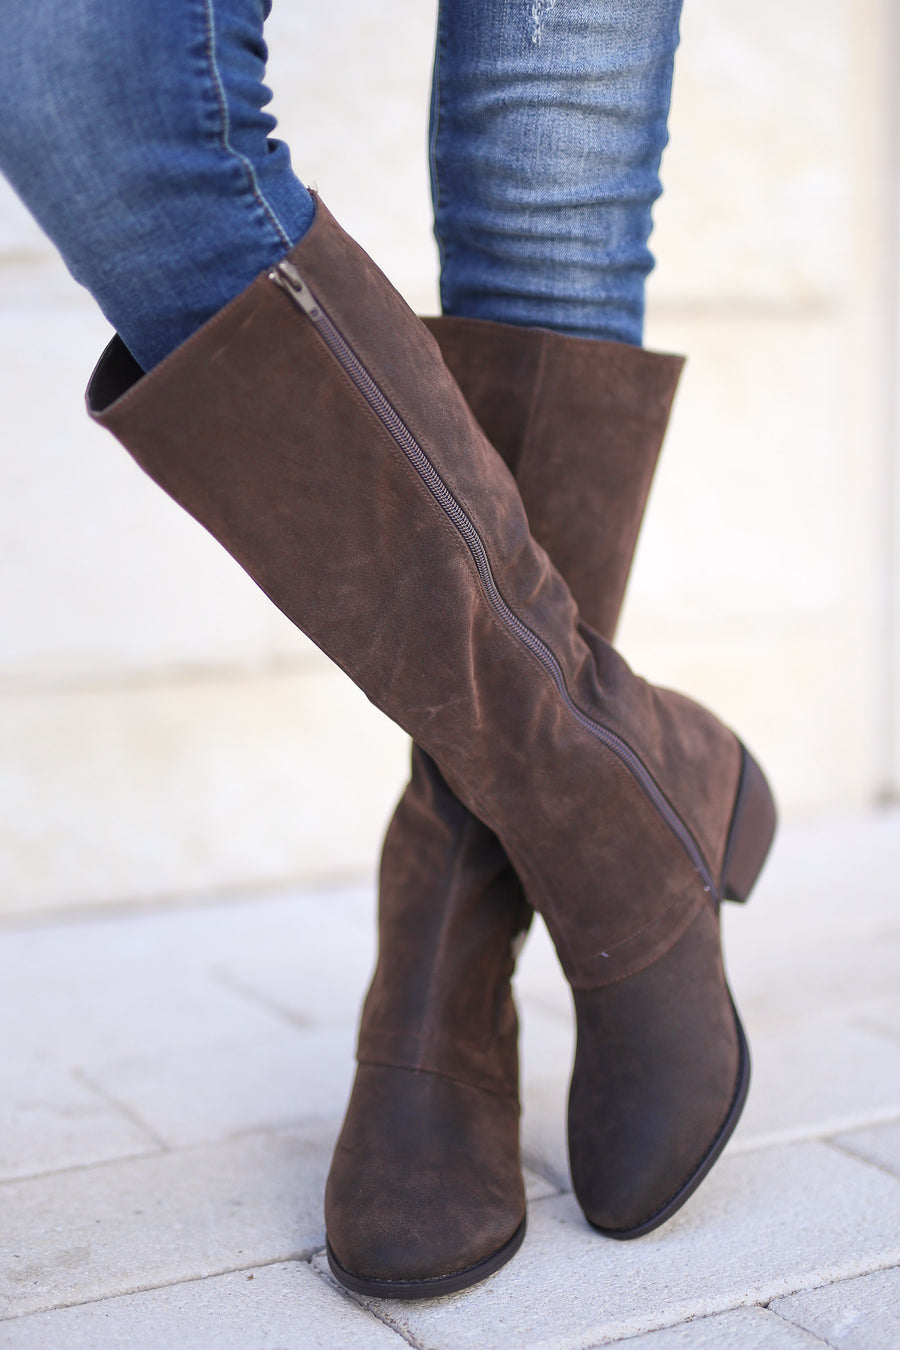 Walk On By Boots - Chocolate trendy, fall season, cute knee high riding boots closet candy boutique 1